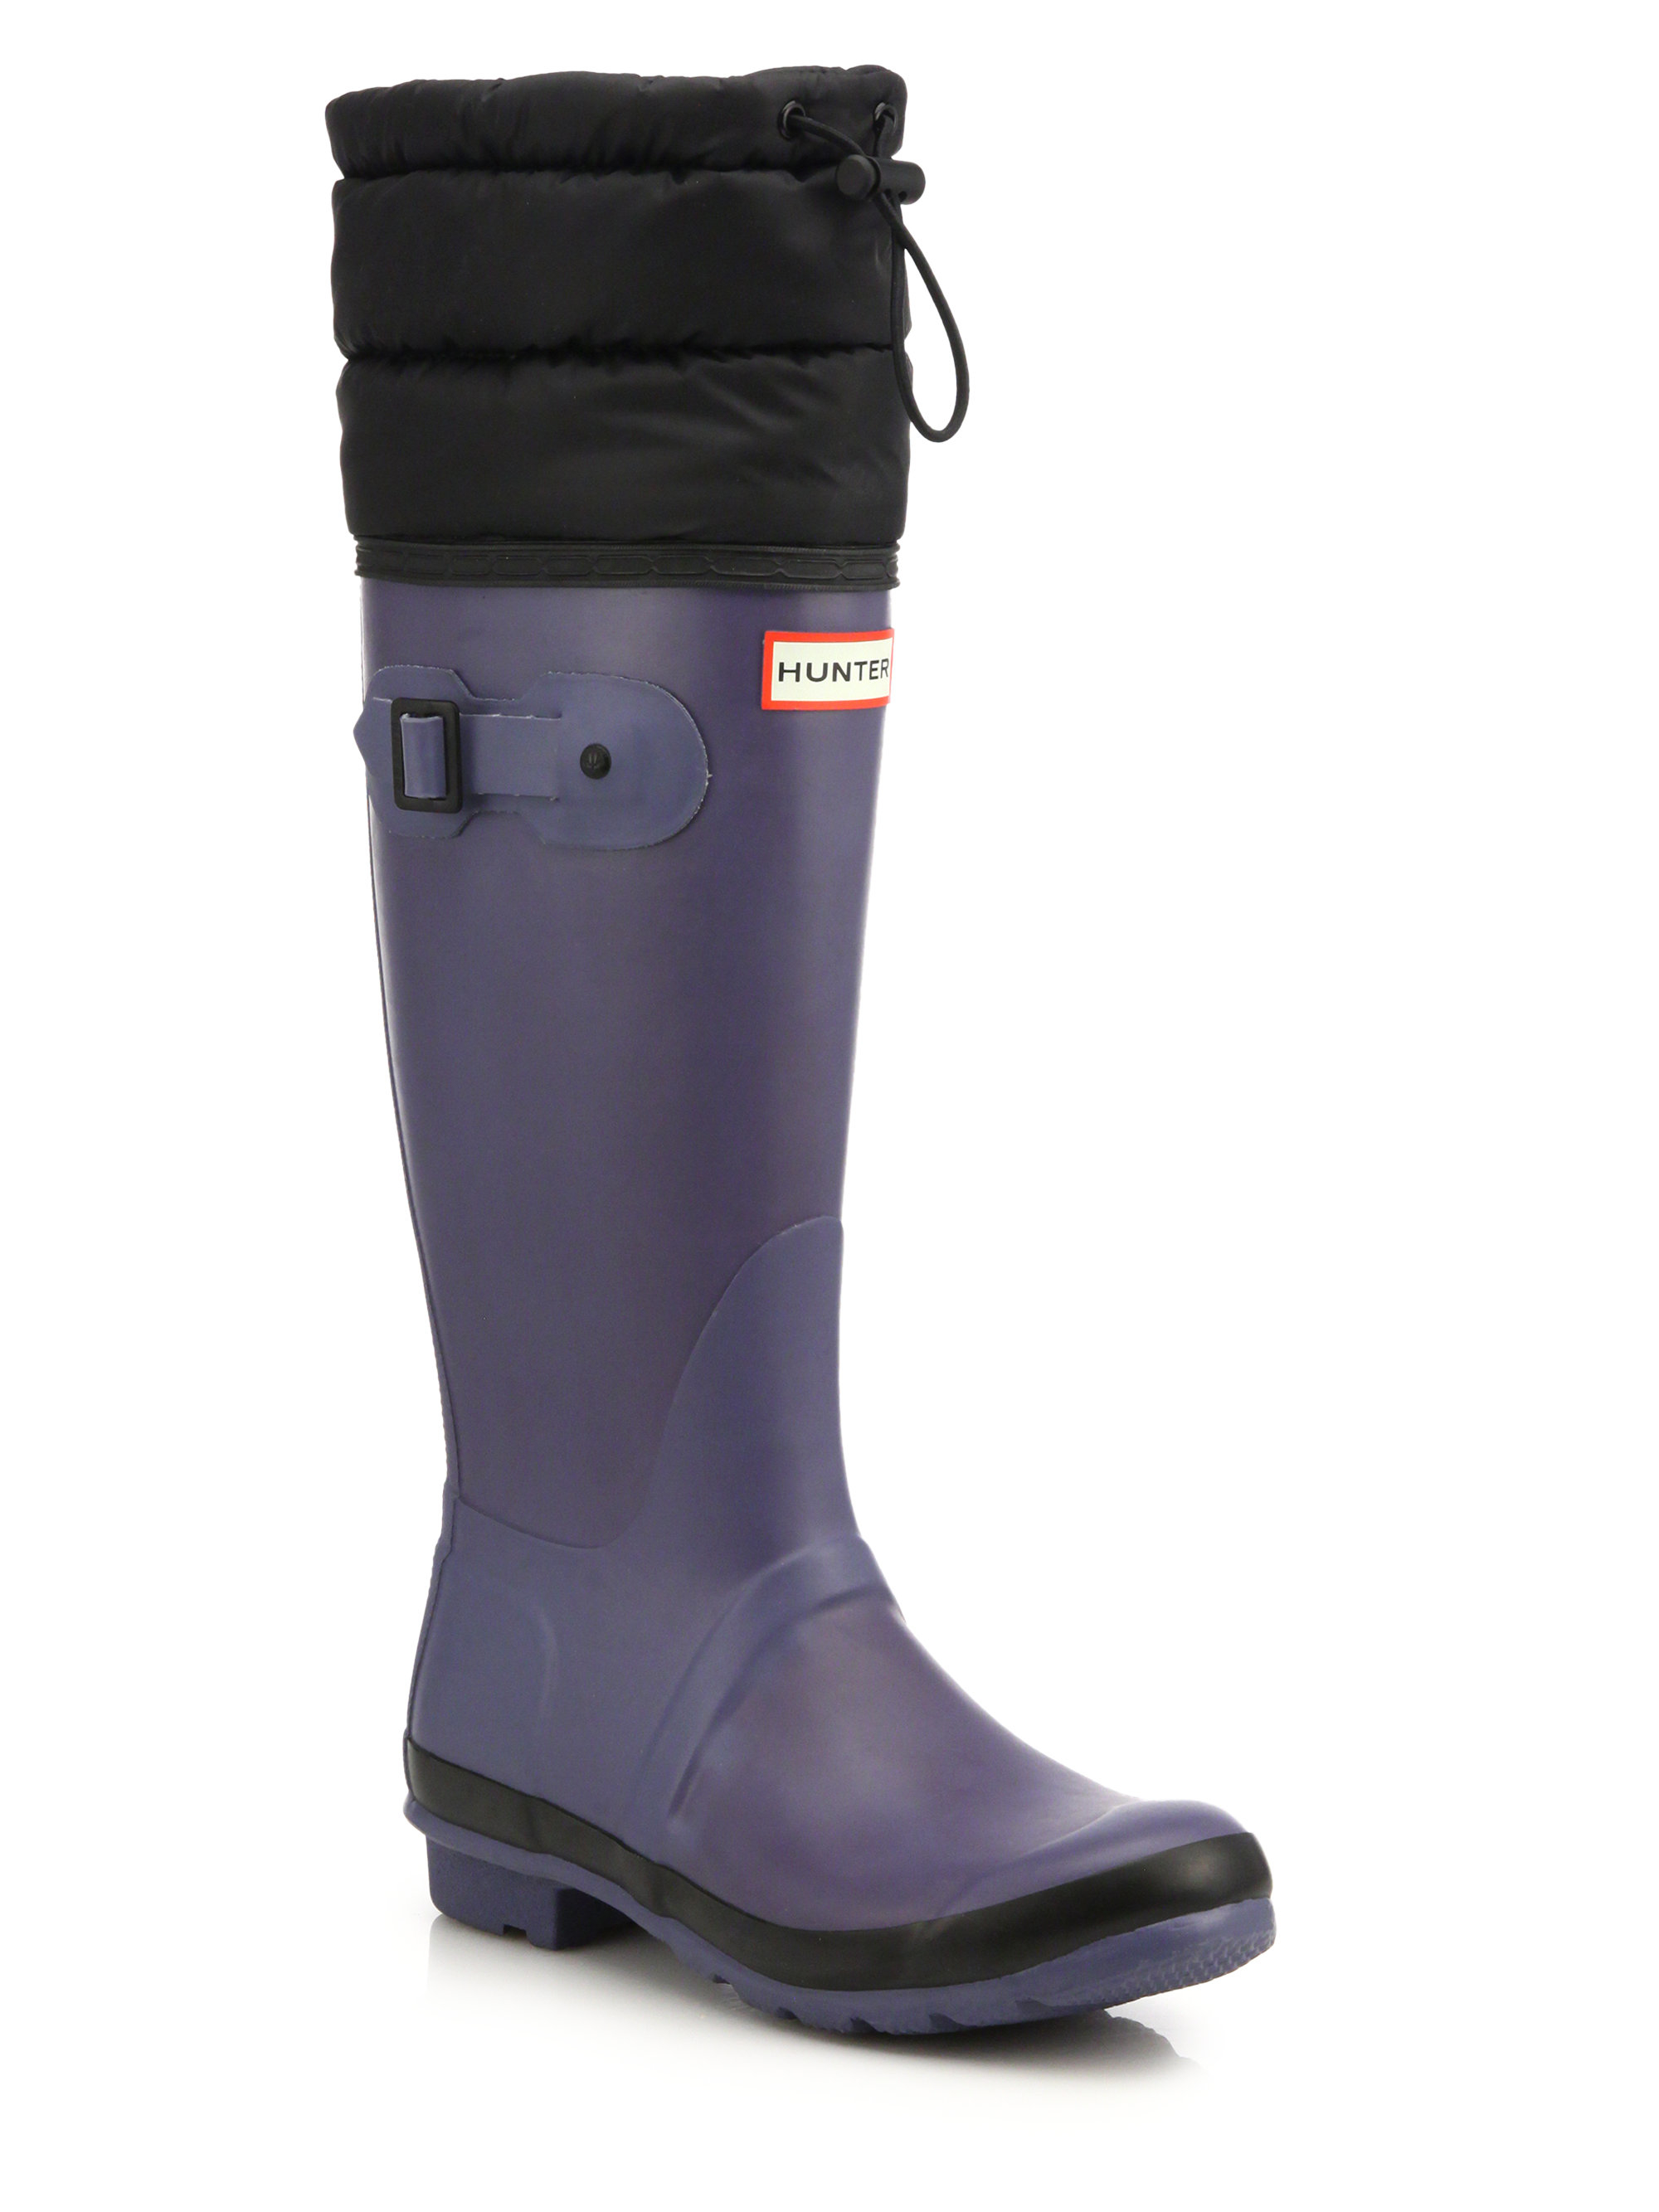 Lyst Hunter Original Quilted Cuff Rubber Rainboots In Blue